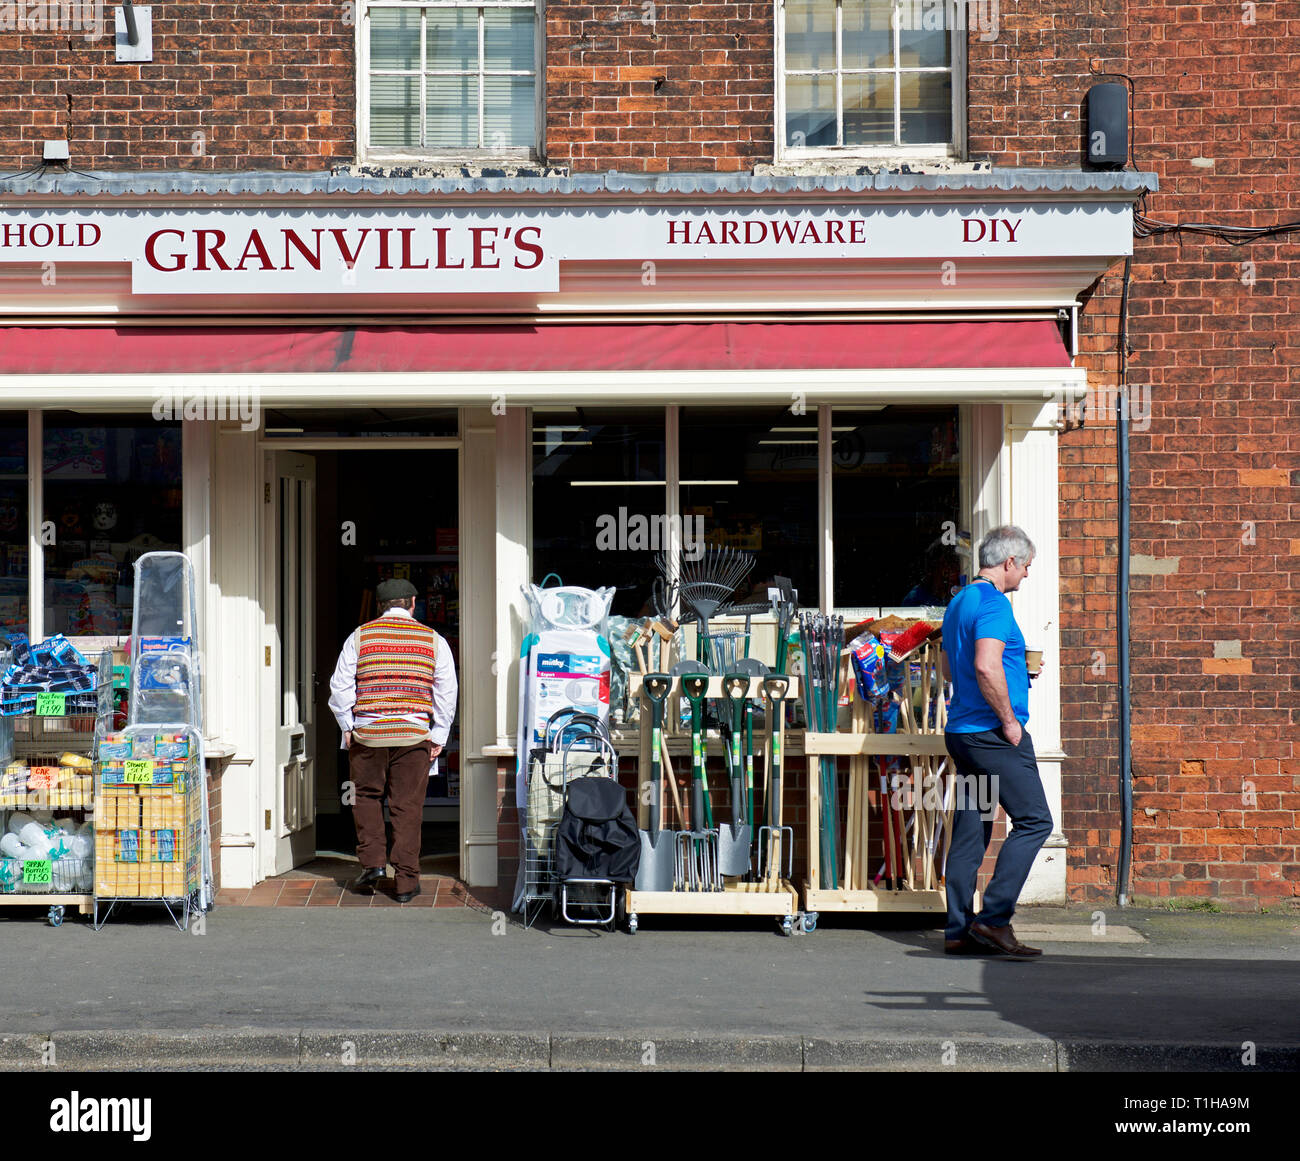 Hardware shop, Granville's, in Market Weighton, East Yorkshire, England UK - Stock Image